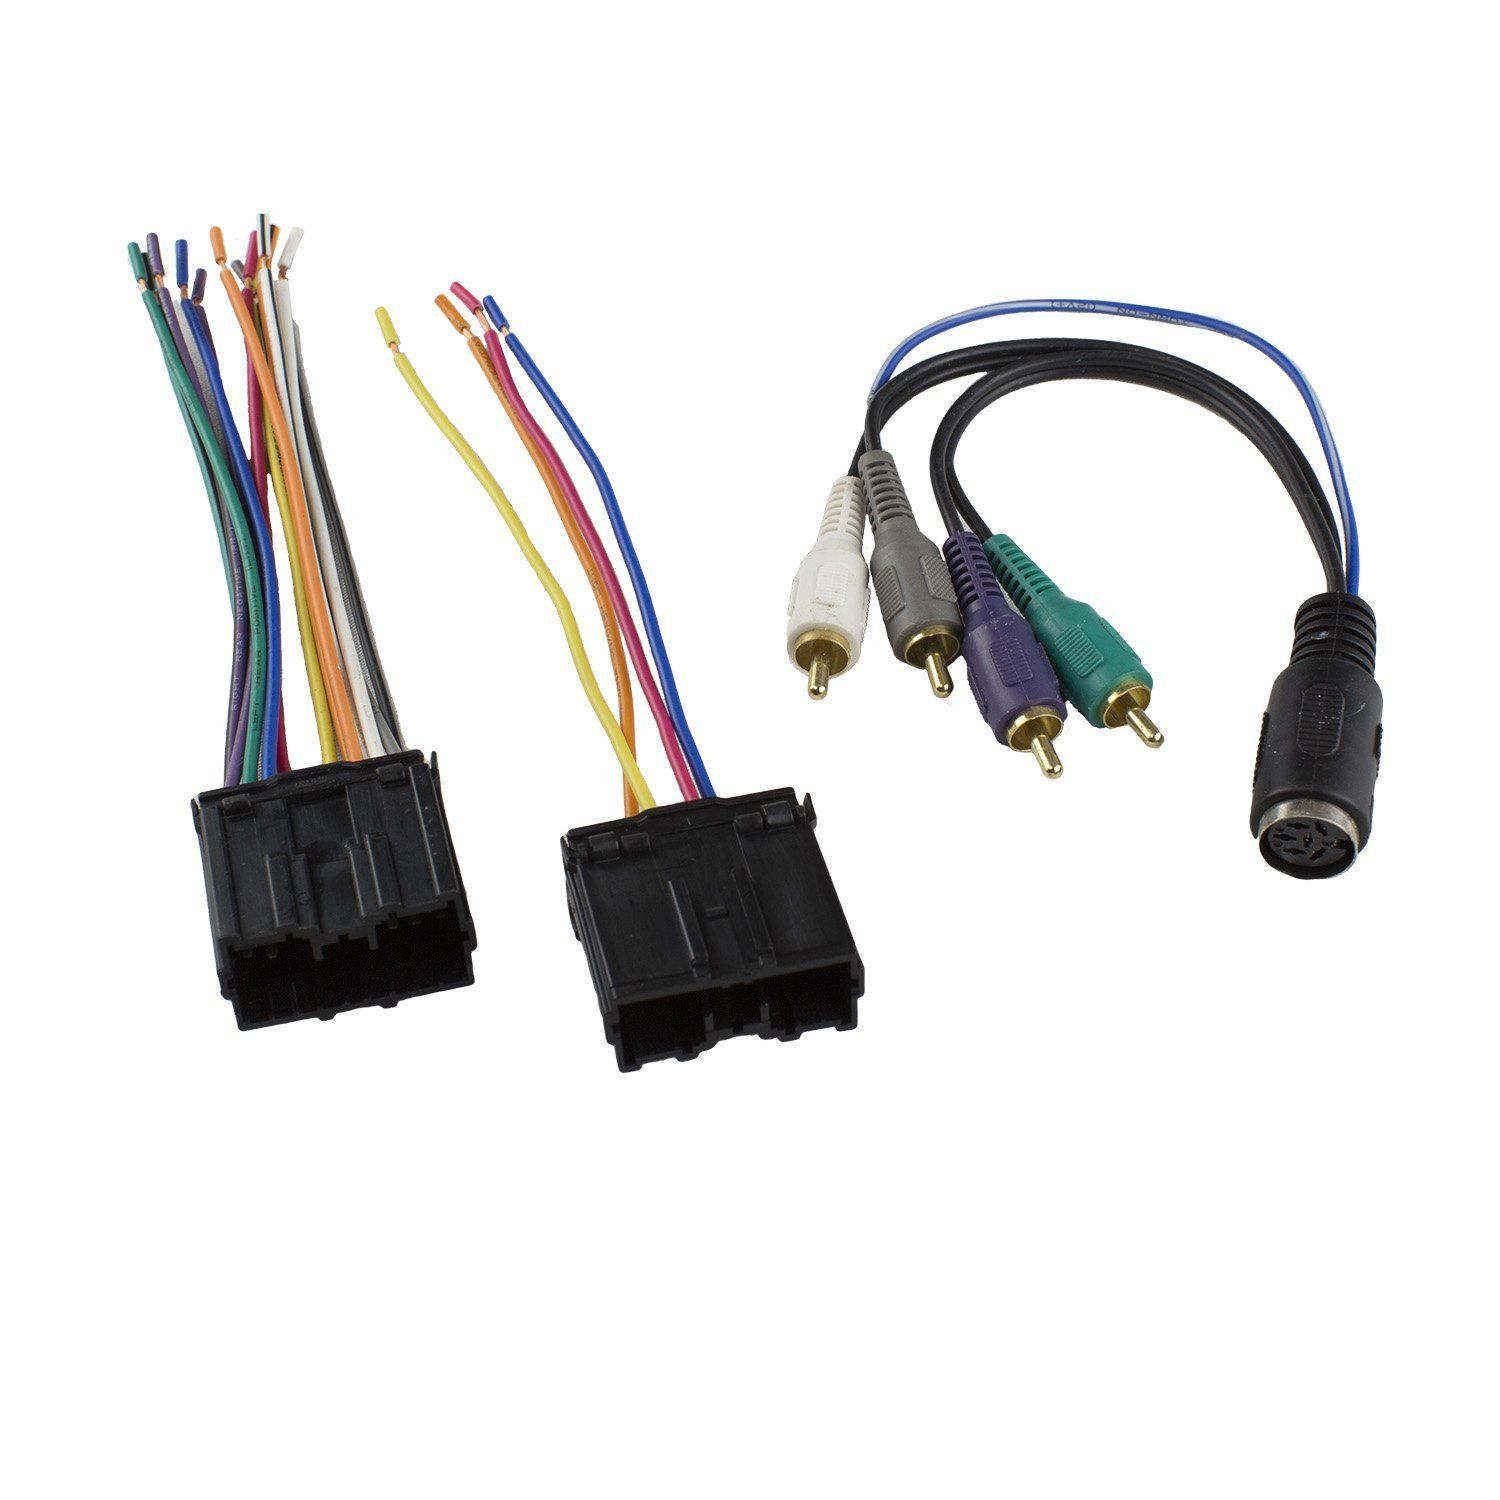 medium resolution of novosonics mif 7004 wiring harness for mitsubishi 4 speaker with amp integration 1994 2007 fits existing connector in your vehicle no cutting existing